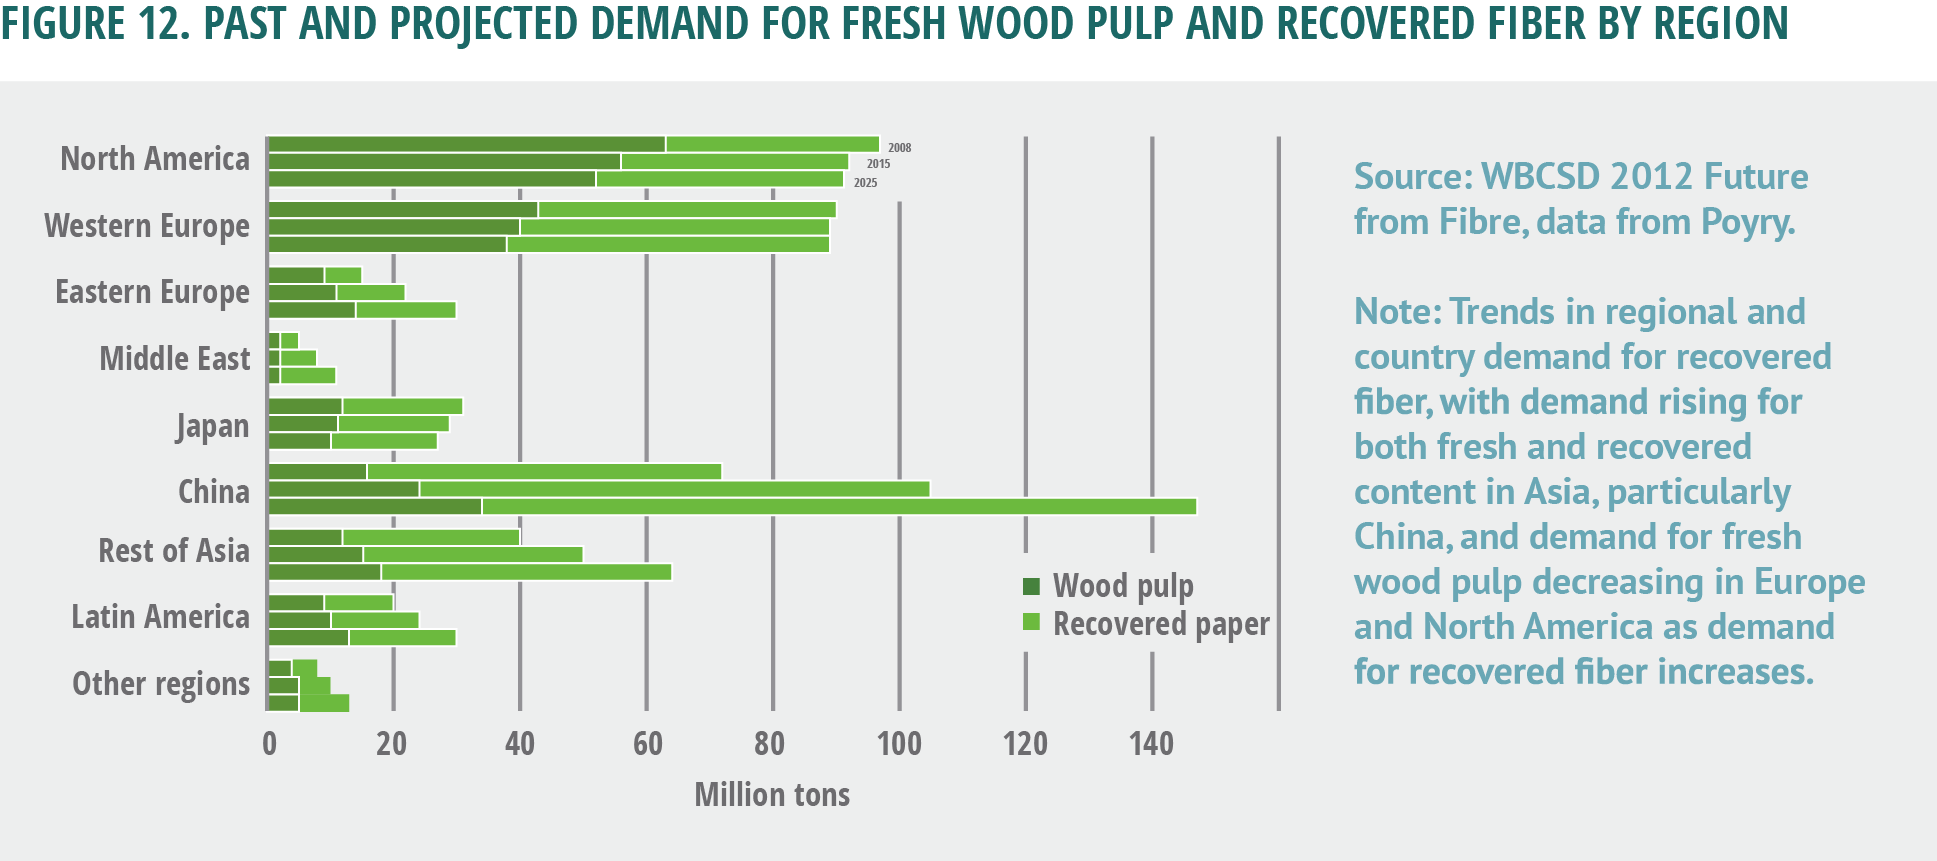 Figure 12. Past and projected demand for fresh wood pulp and recovered fiber by region